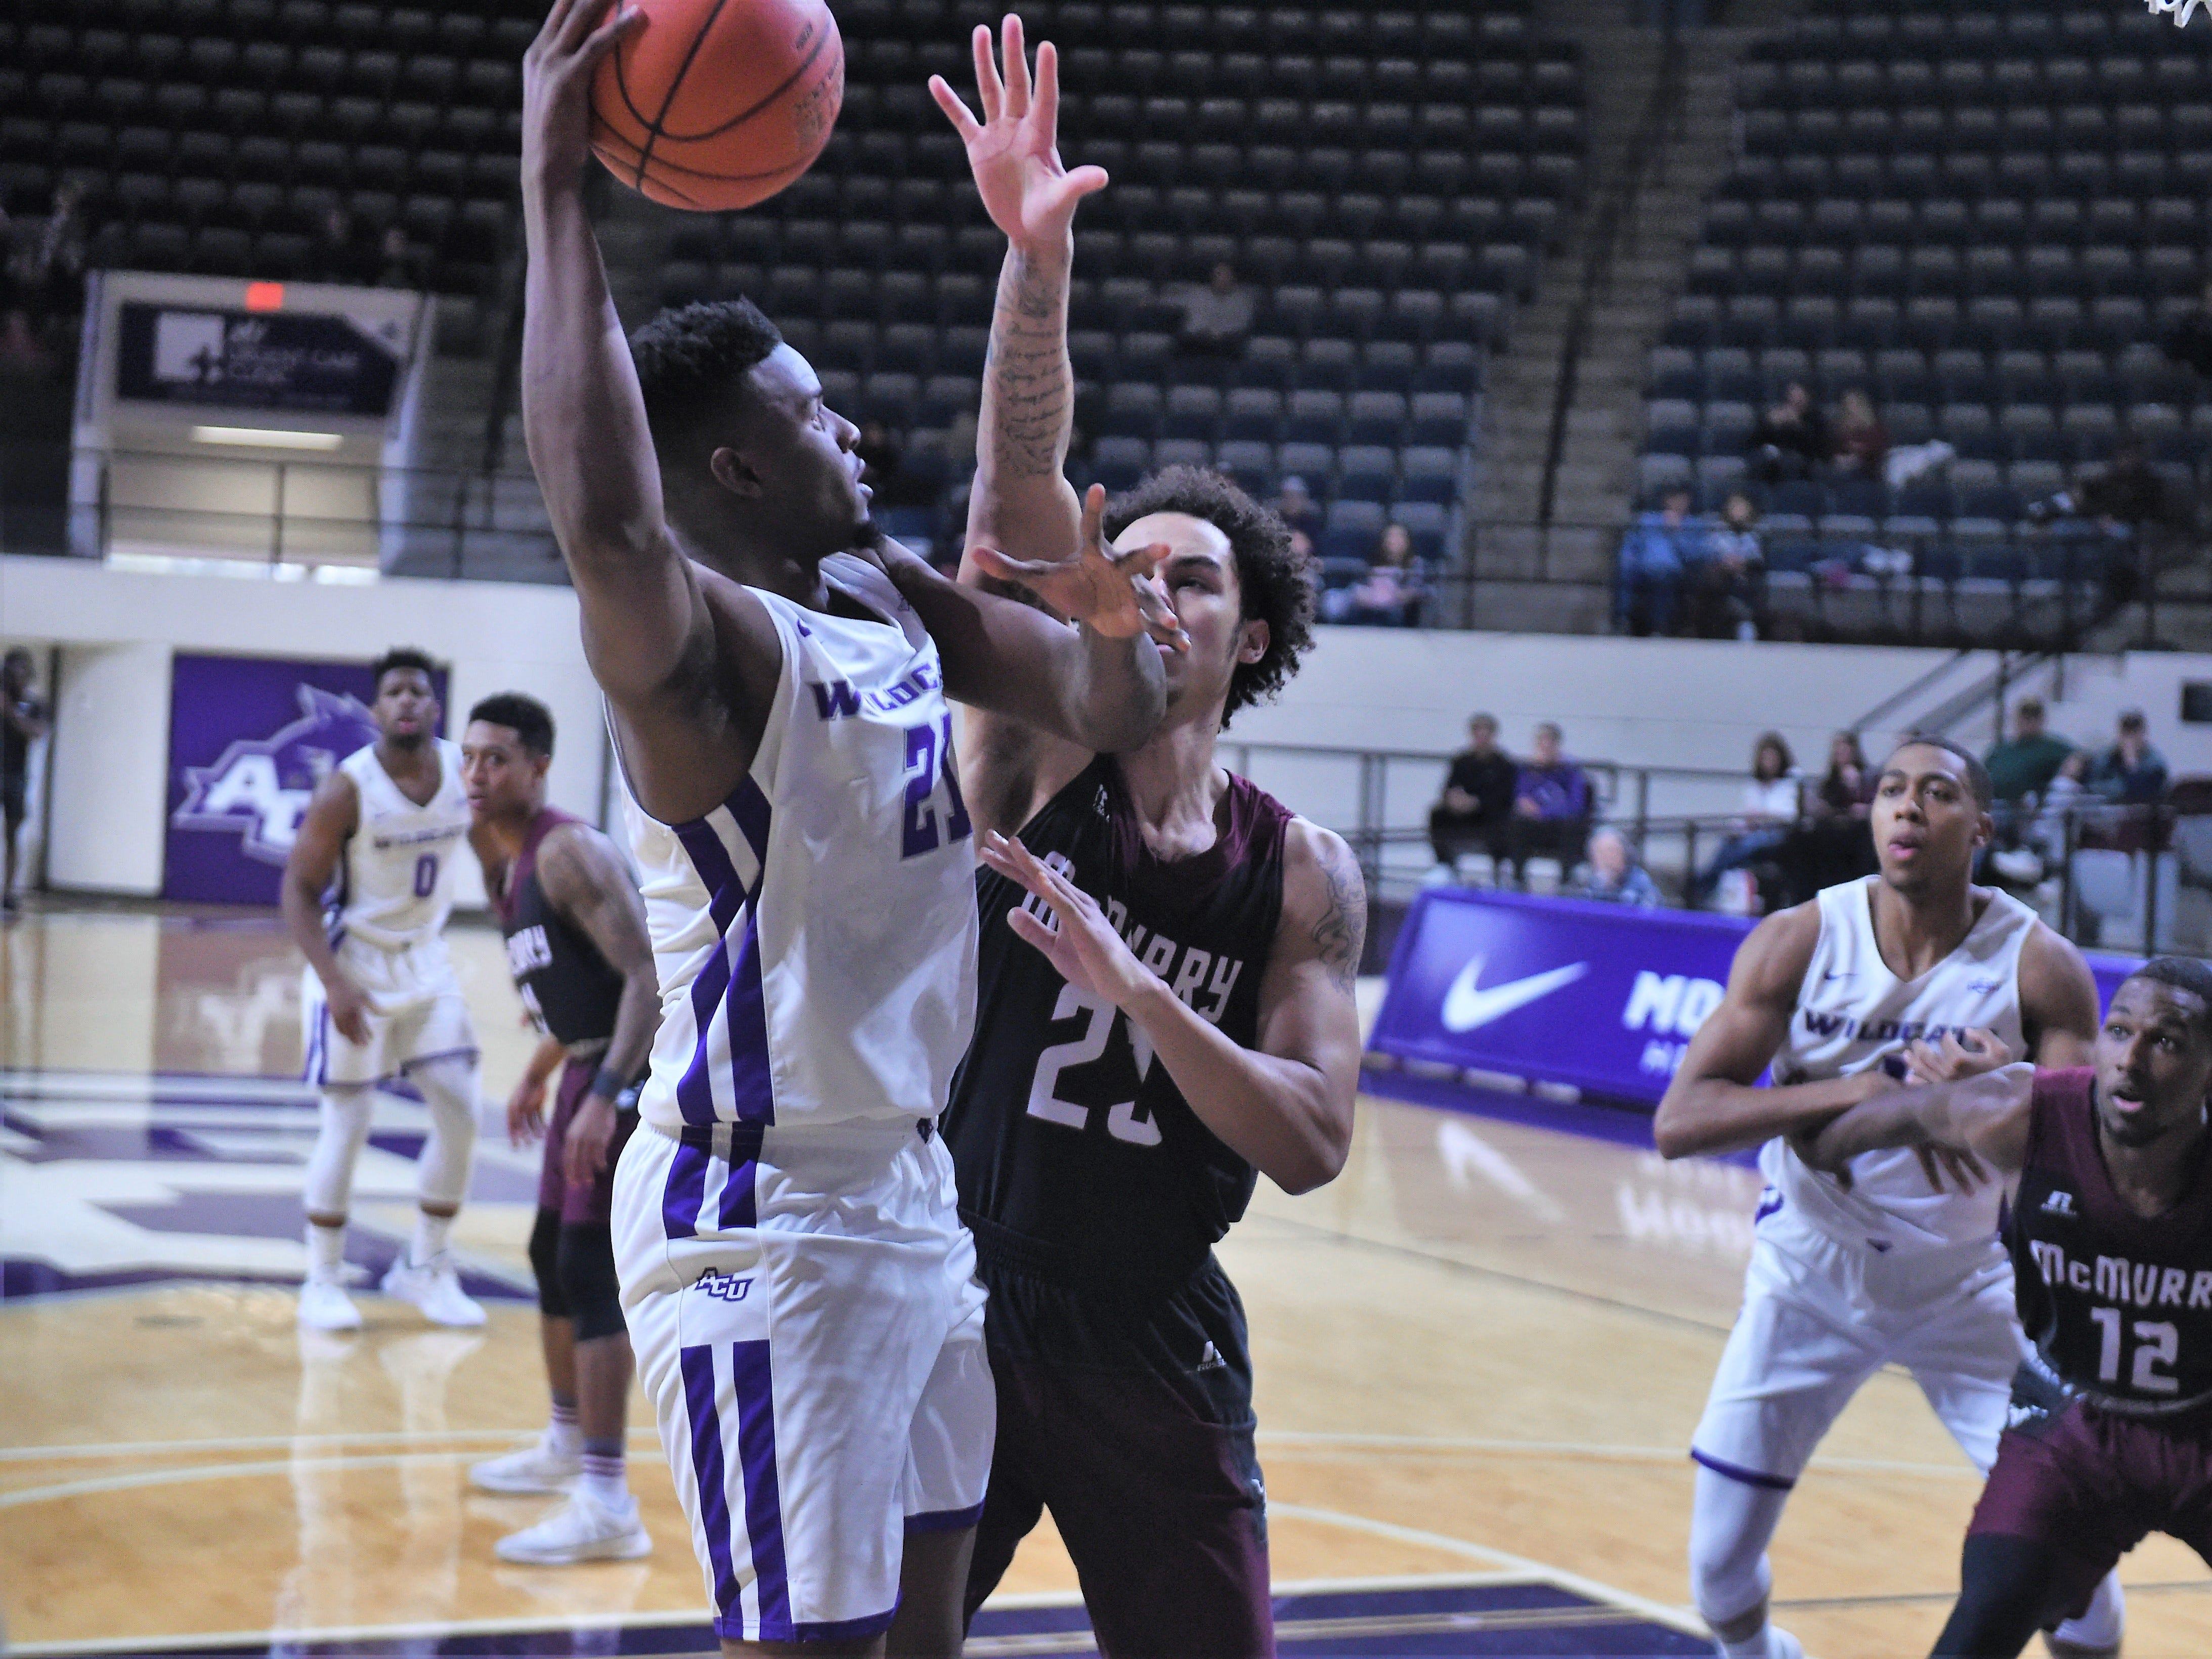 ACU's Jalone Friday (21) goes over McMurry's Jordan Jackson (23) during Saturday's game at Moody Coliseum.